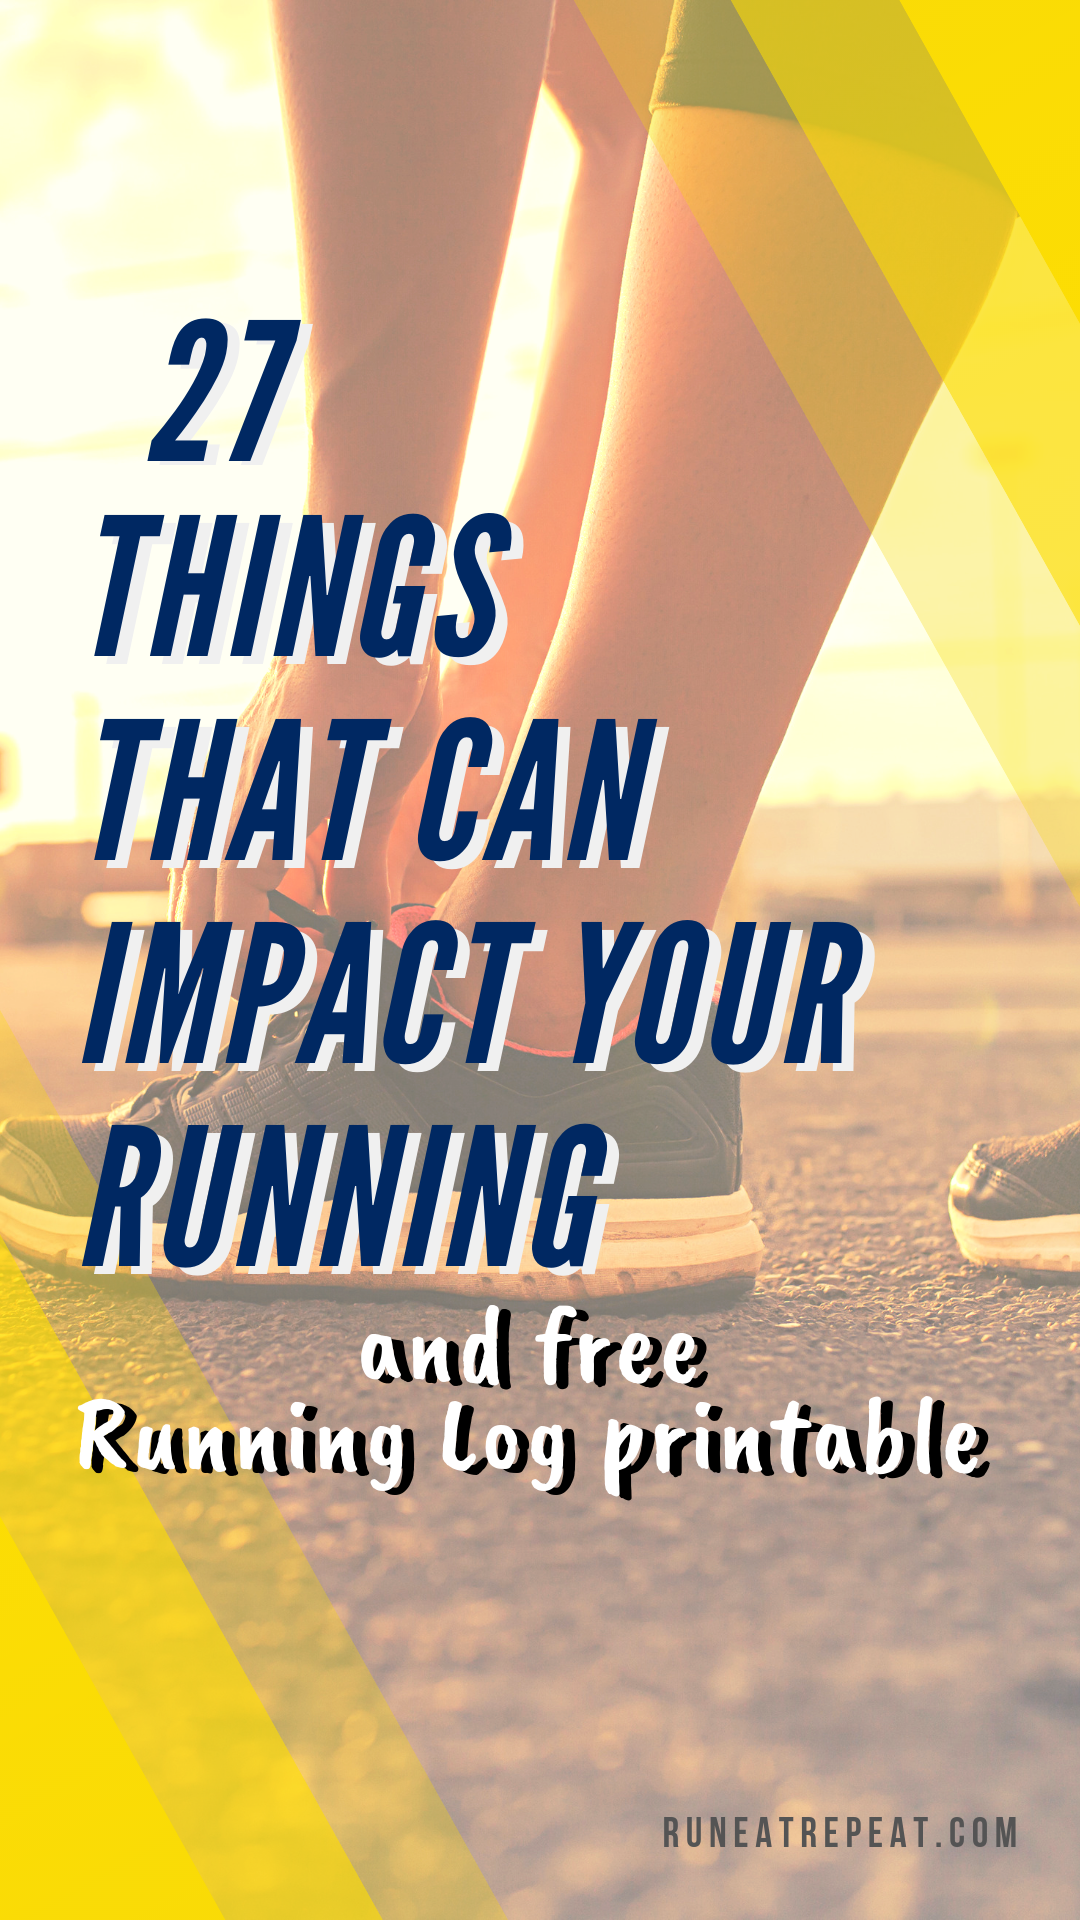 picture regarding Printable Running Log titled 27 Motives That Can Affect Your Working out and Cost-free Operating